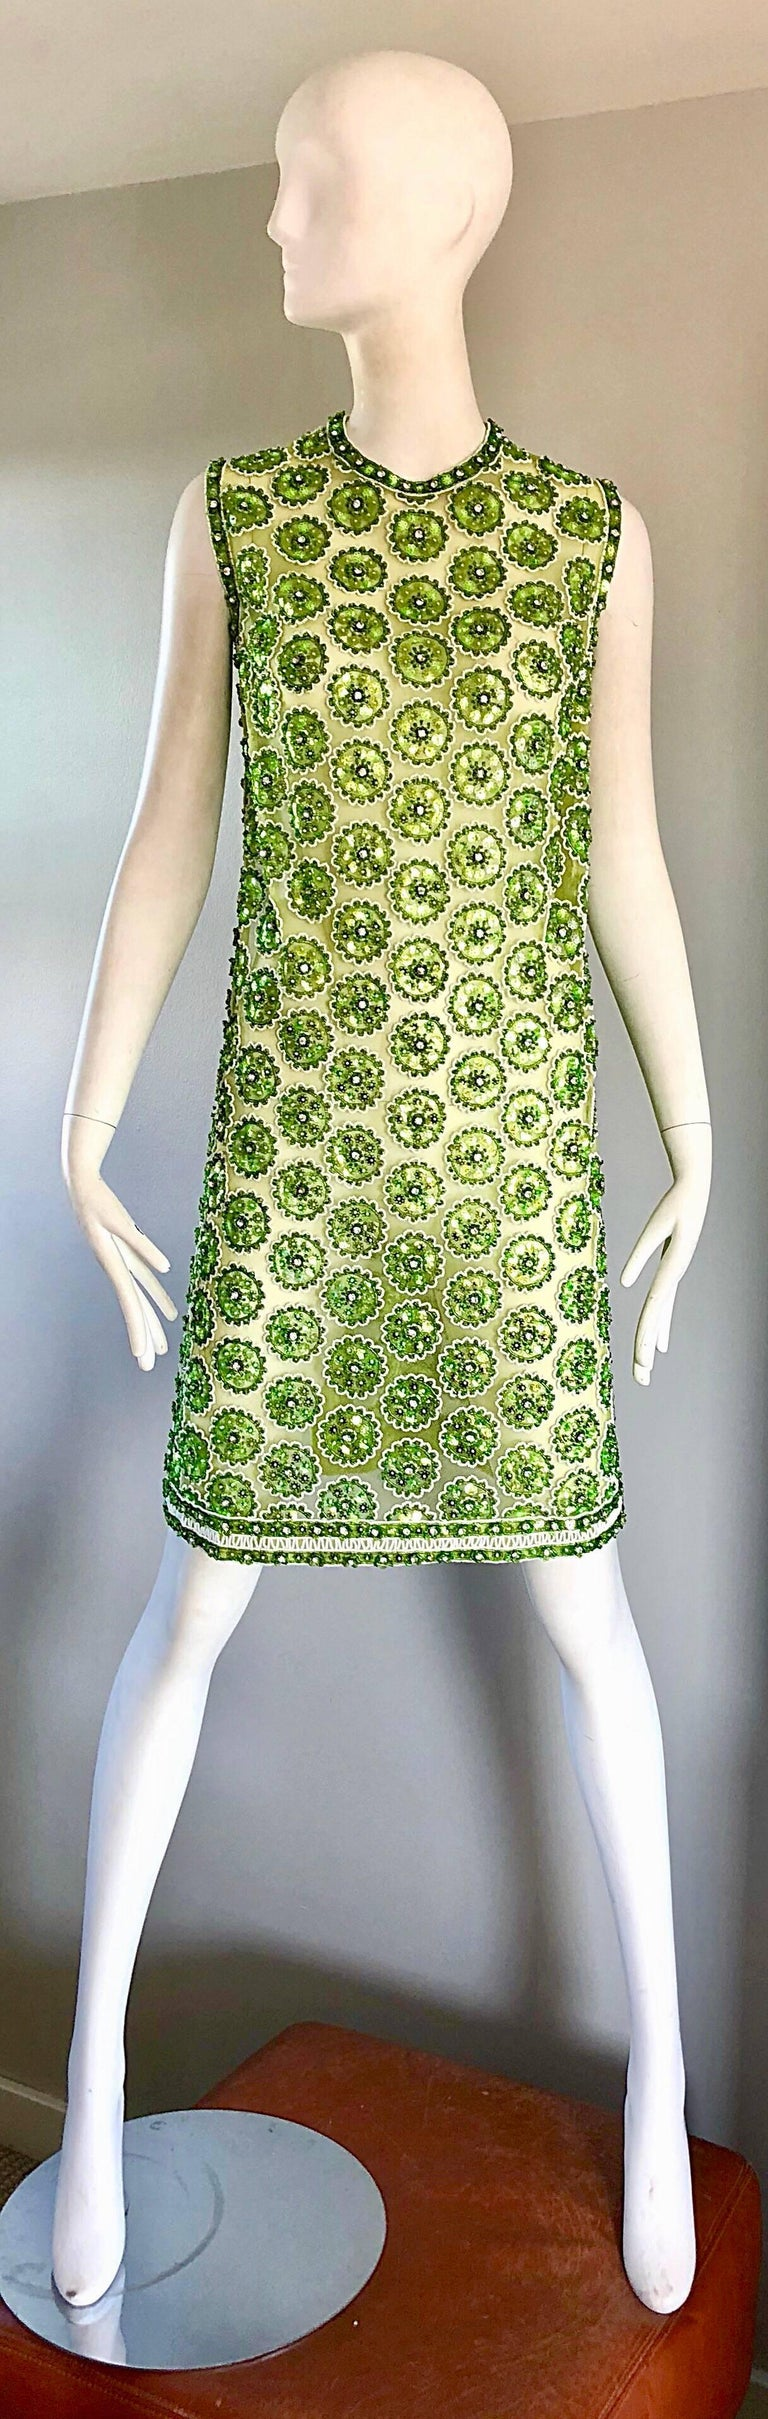 Chic 1960s fully sequined and beaded mesh demi couture tunic dress! Features thousands of hand-sewn sequins, rhinestones, and beads throughout to form flower shapes. Full metal zipper up the back with hook-and-eye closure. Semi sheer net mesh. High